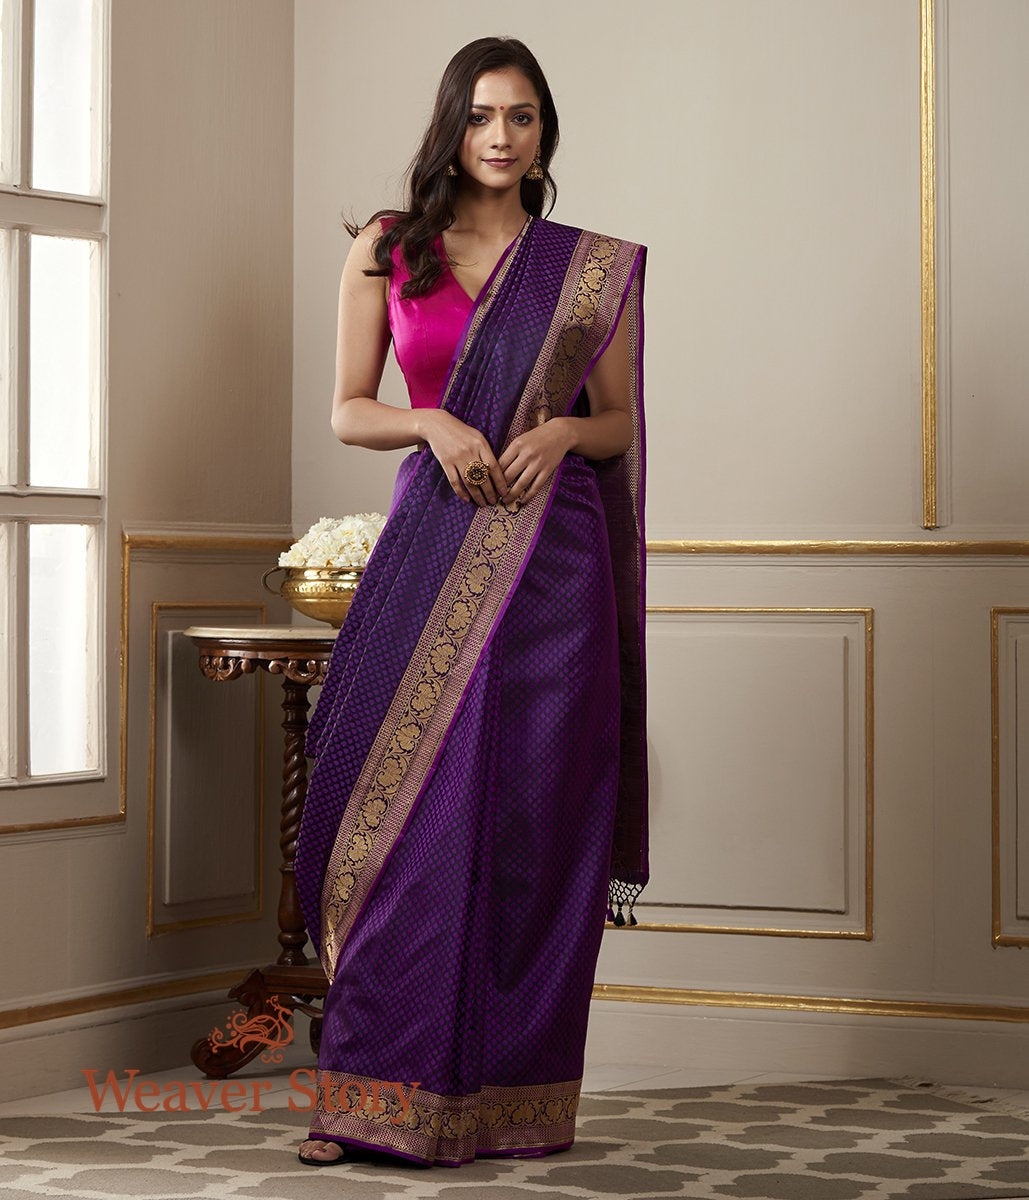 Handwoven Purple and Black Dual Tone Banarasi Tanchoi Saree with Floral Border